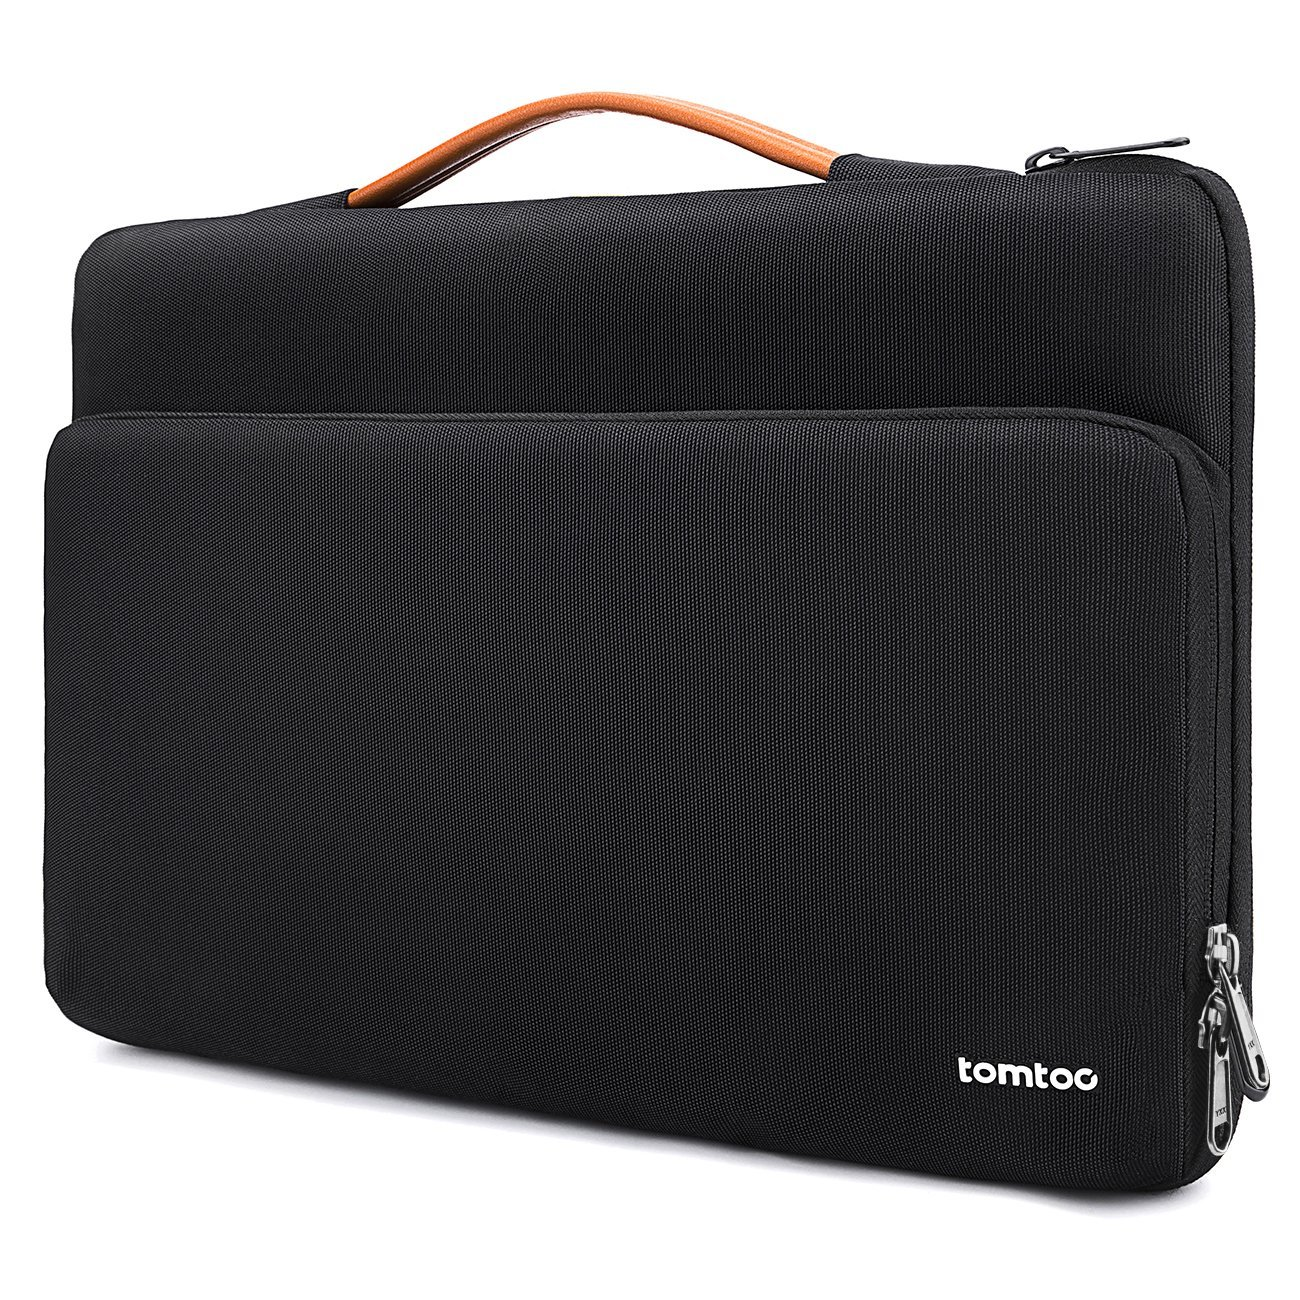 tomtoc 360 Protective Laptop Carrying Case for New MacBook Air 13-inch with Retina Display A1932, 13 Inch New MacBook Pro USB-C A1989 A1706 A1708, Microsoft Surface Pro 6/5/4, Ultrabook Accessory Bag by tomtoc (Image #1)